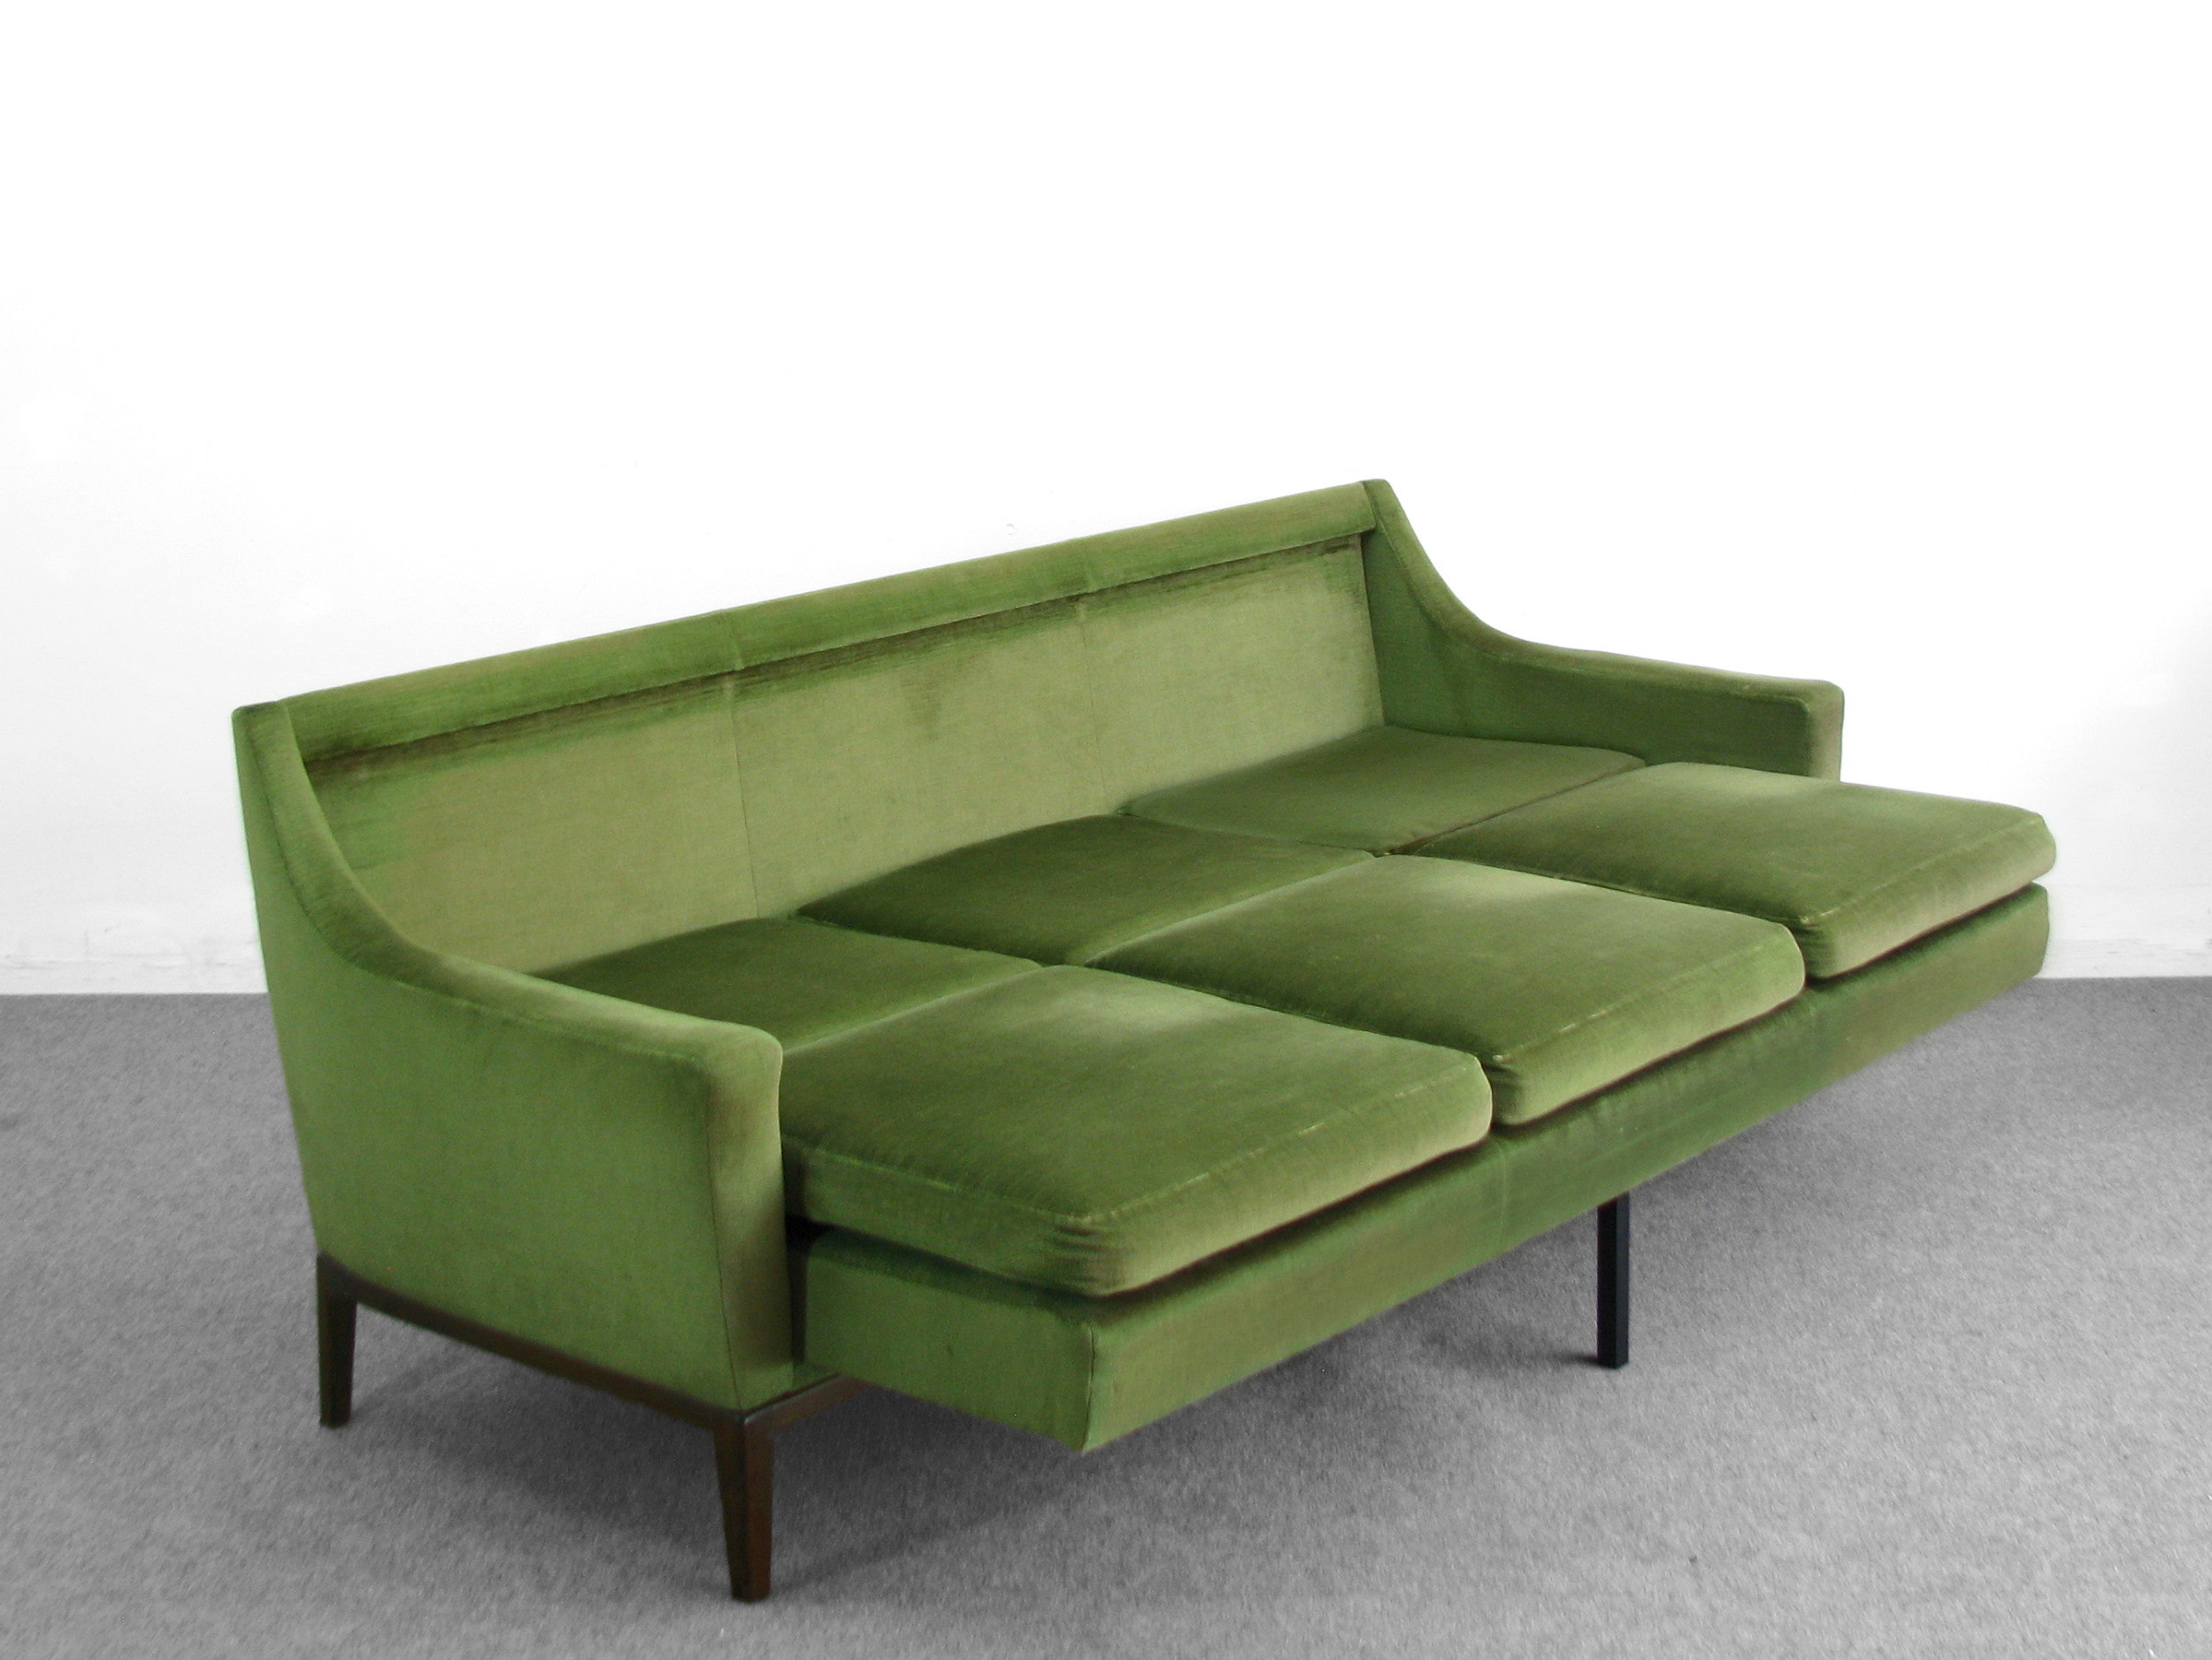 60s daybed couch sofa schlafcouch schlafsofa 50er 60er ebay. Black Bedroom Furniture Sets. Home Design Ideas